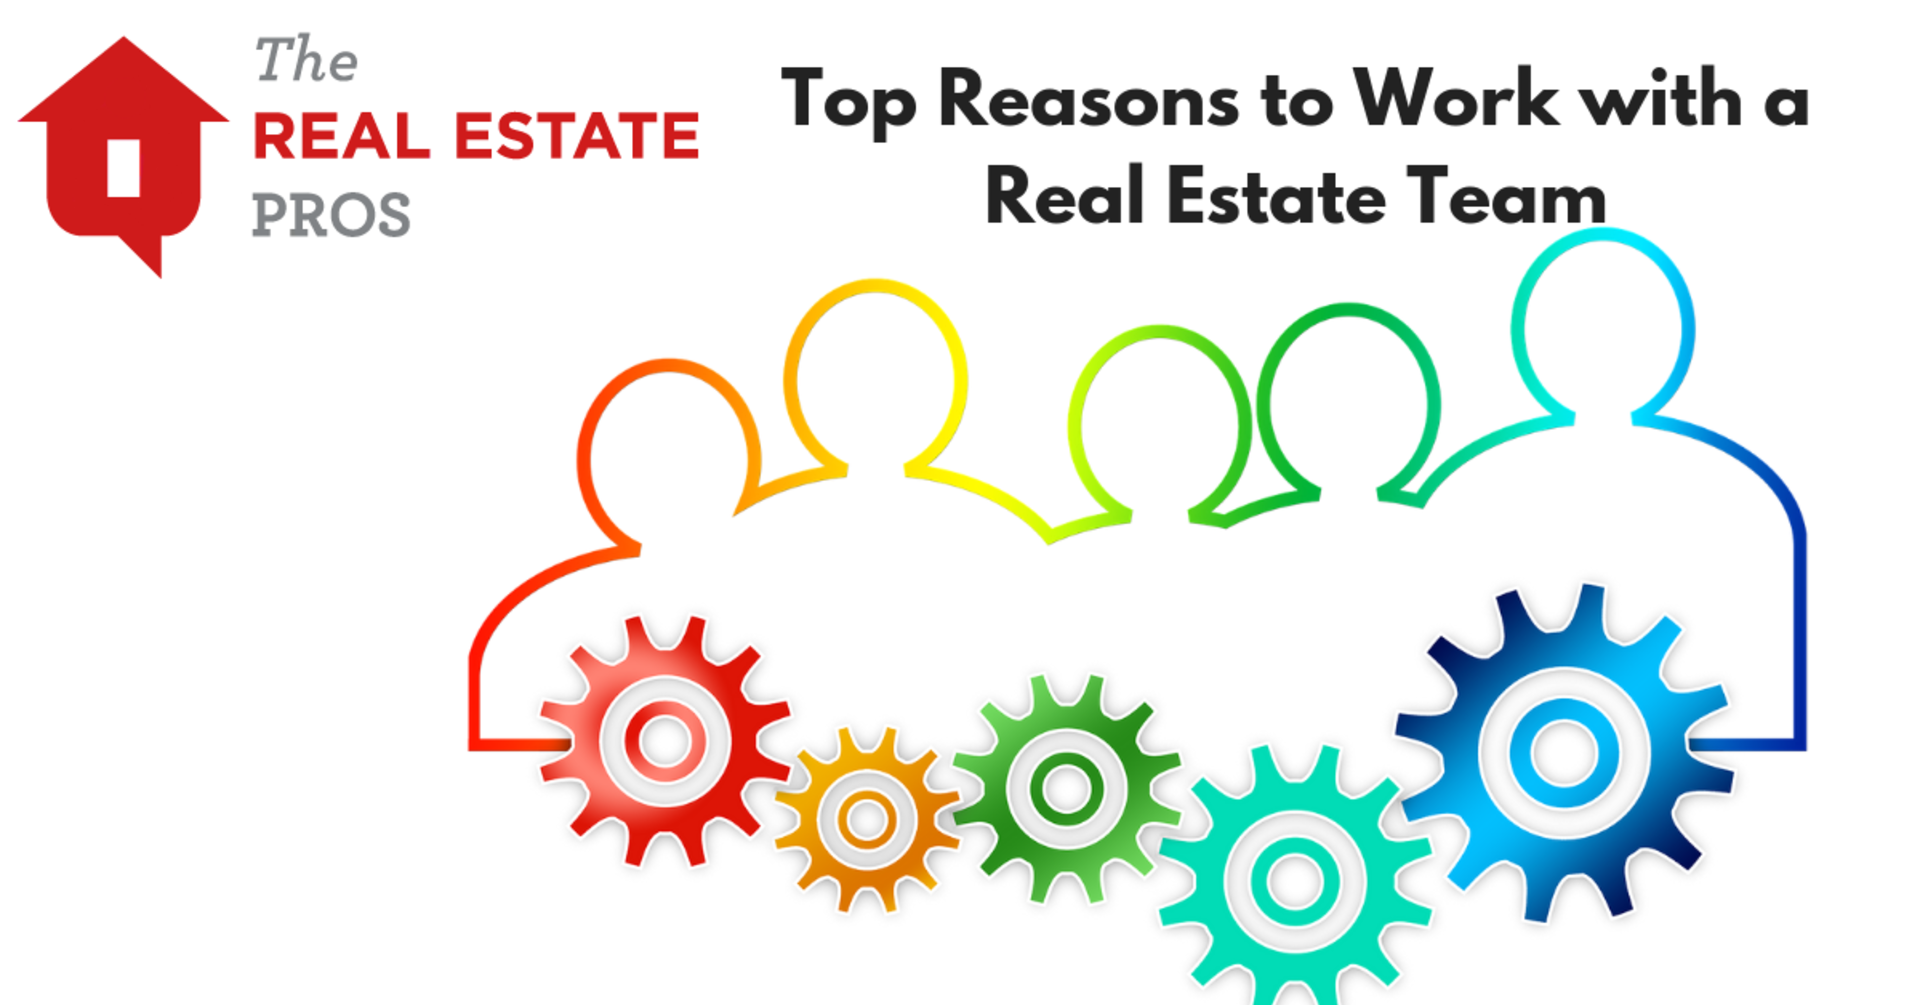 Top Reasons to Work with a Real Estate Team